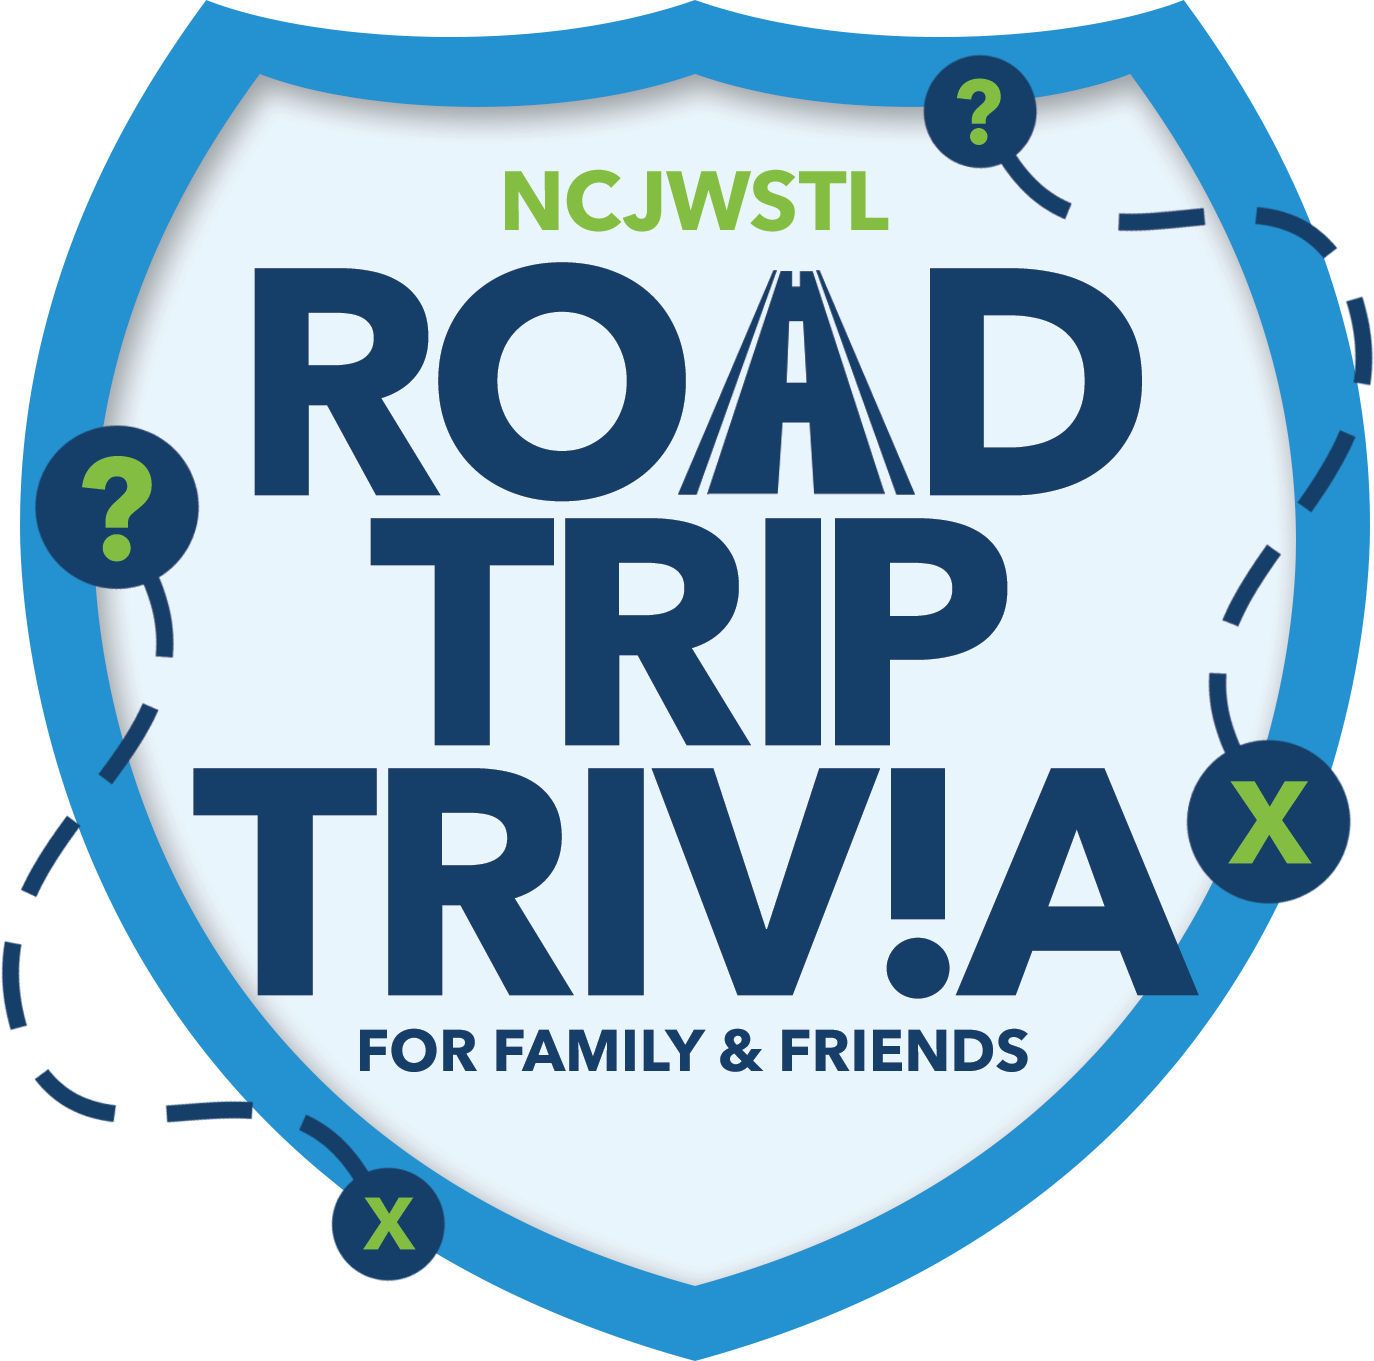 Road Trip Trivia for Family & Friends